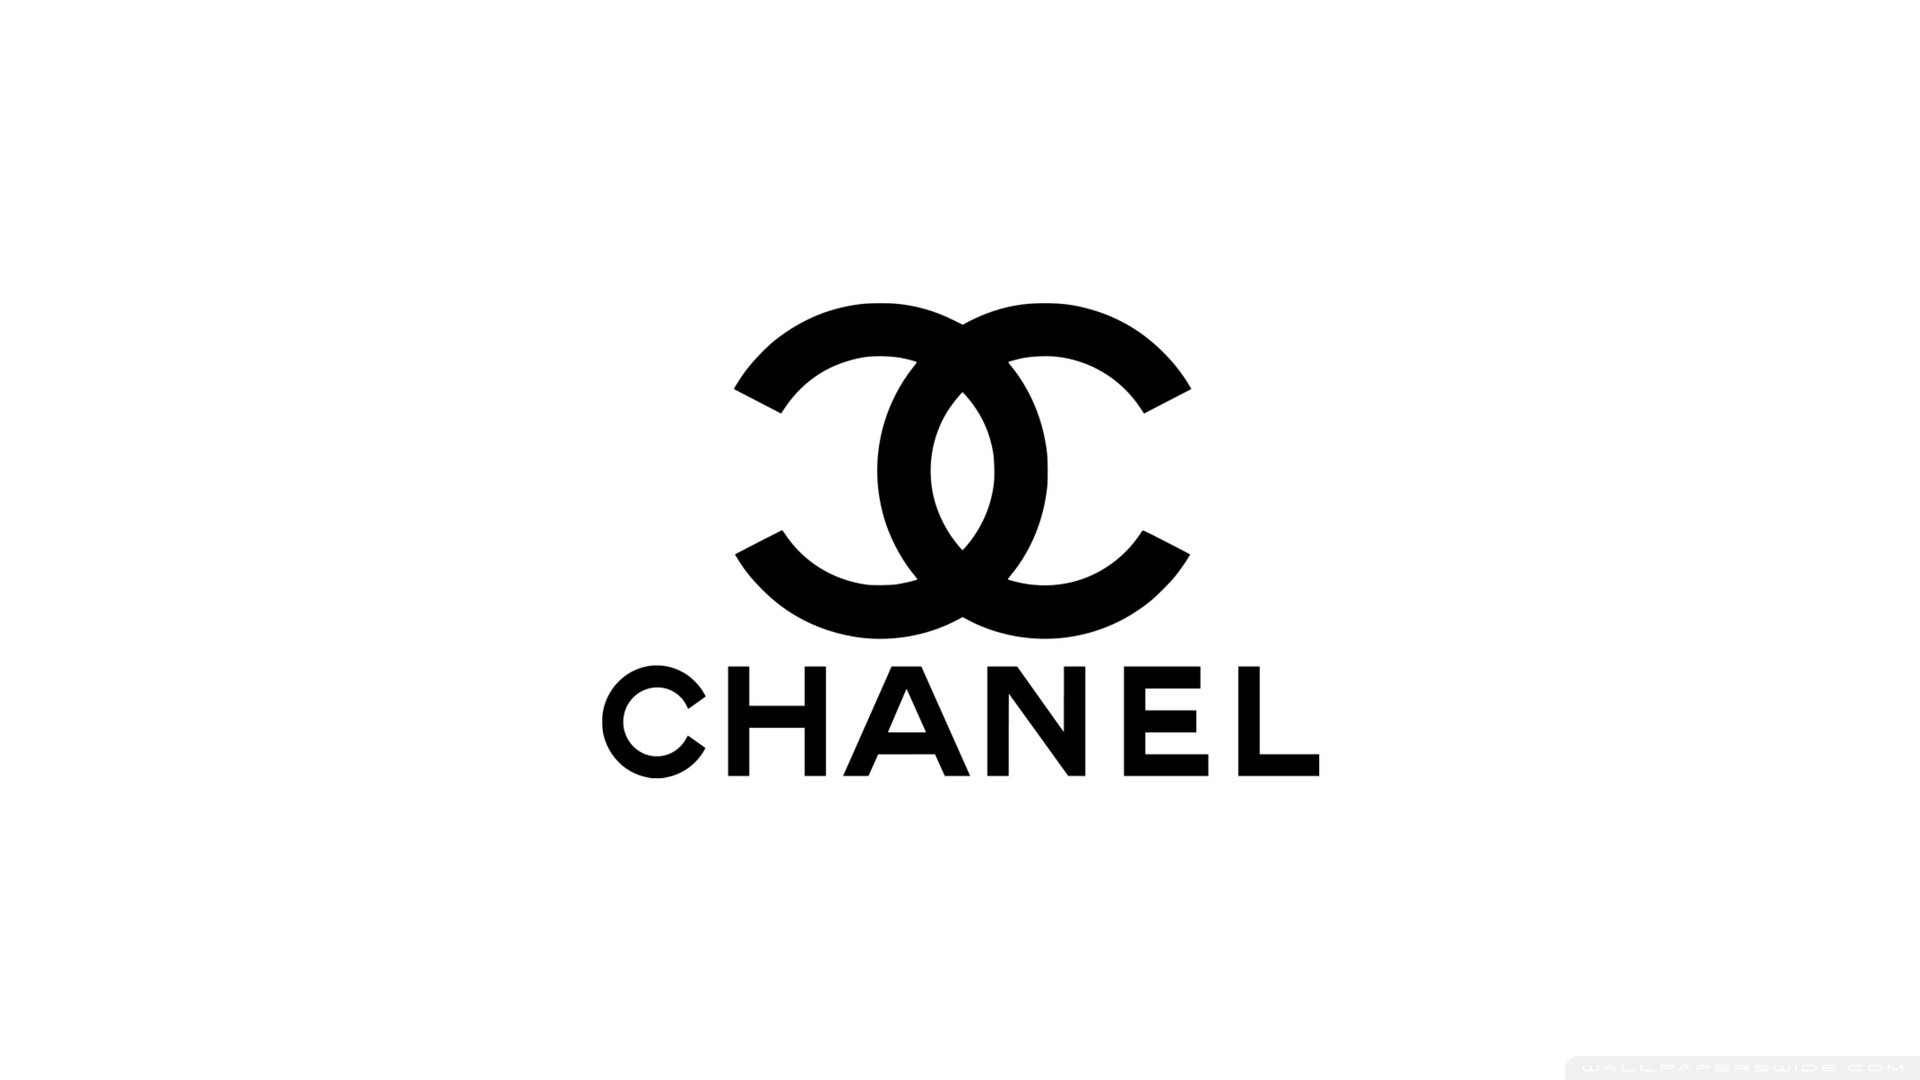 Girly Quotes Wallpapers For Mobile Chanel Wallpaper 183 ①